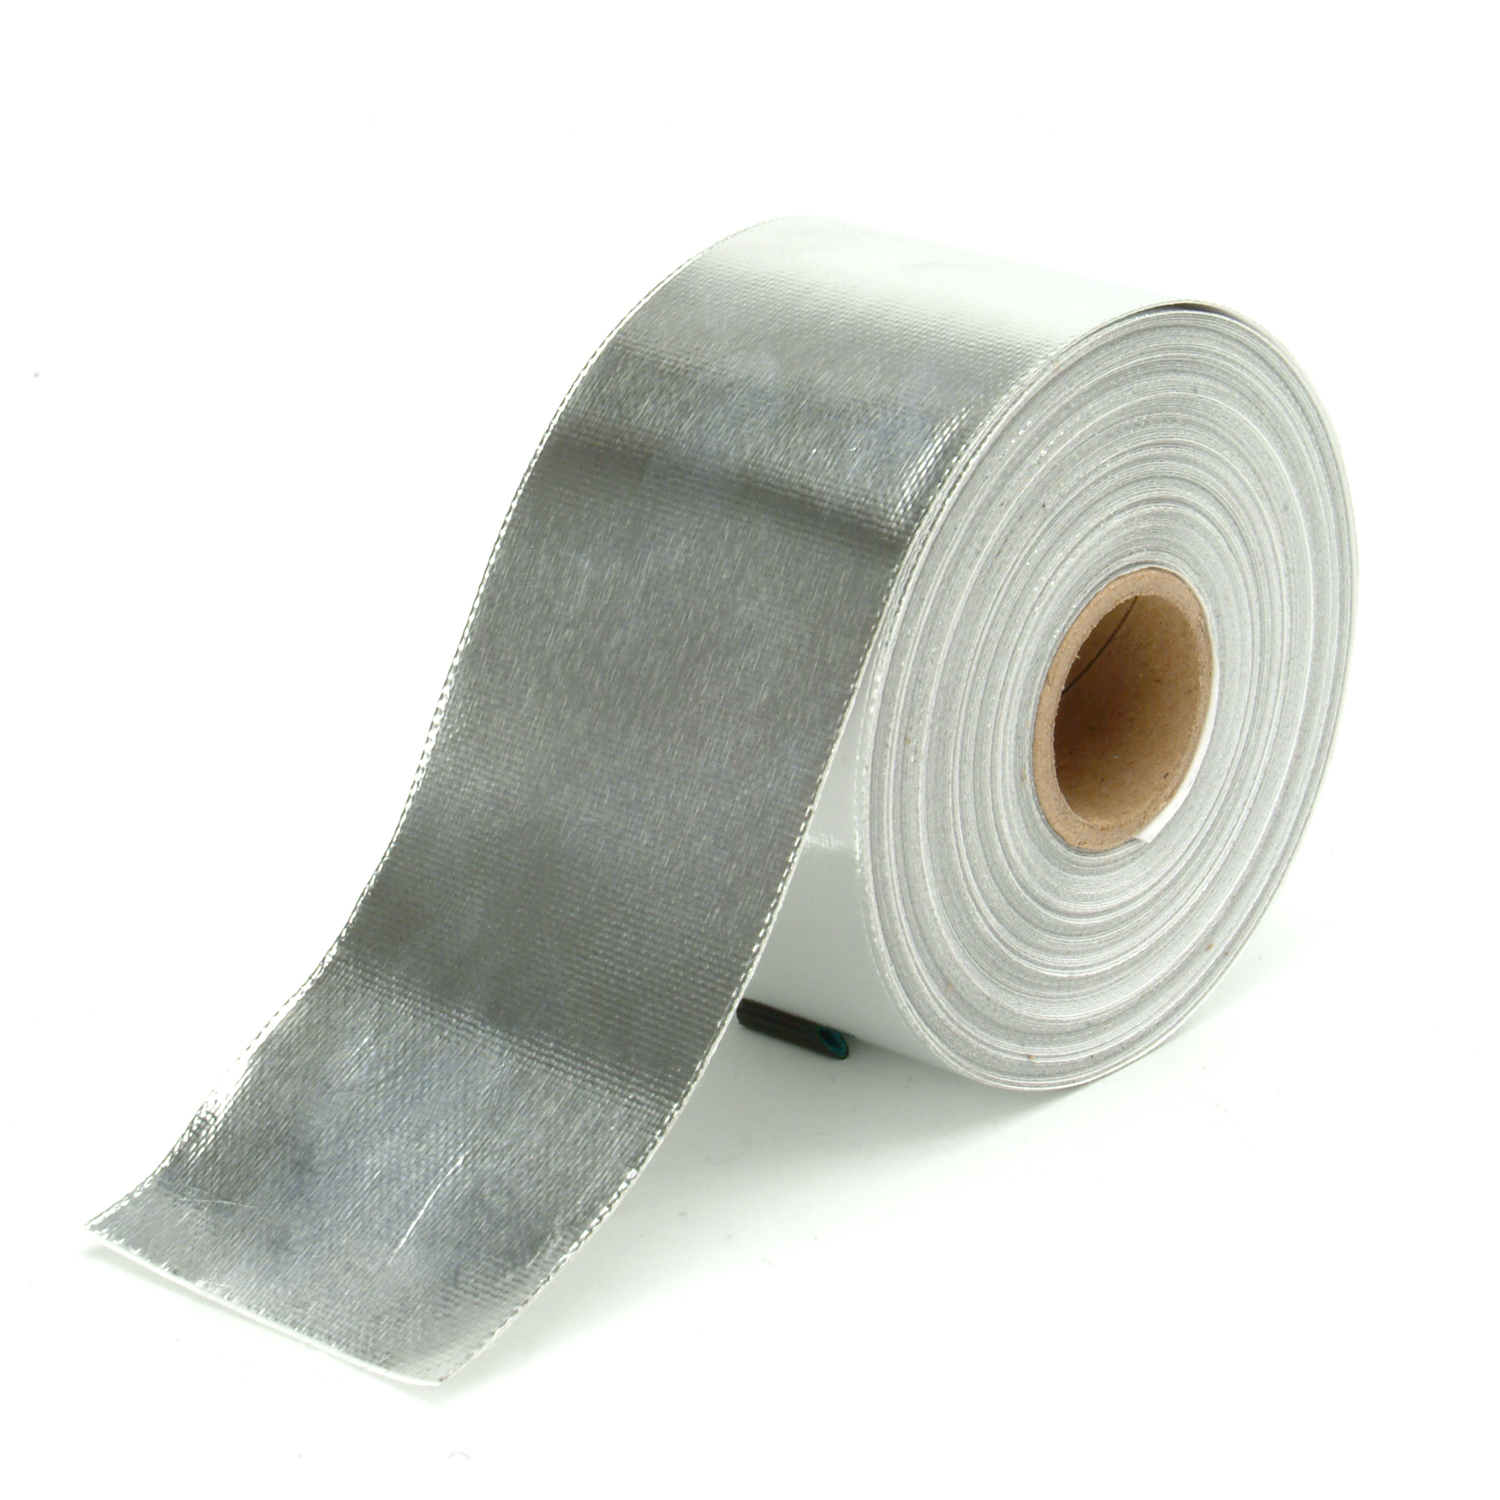 "Design Engineering, Inc. 010413 Cool-Tape Plus™ 2"" x 60ft roll"